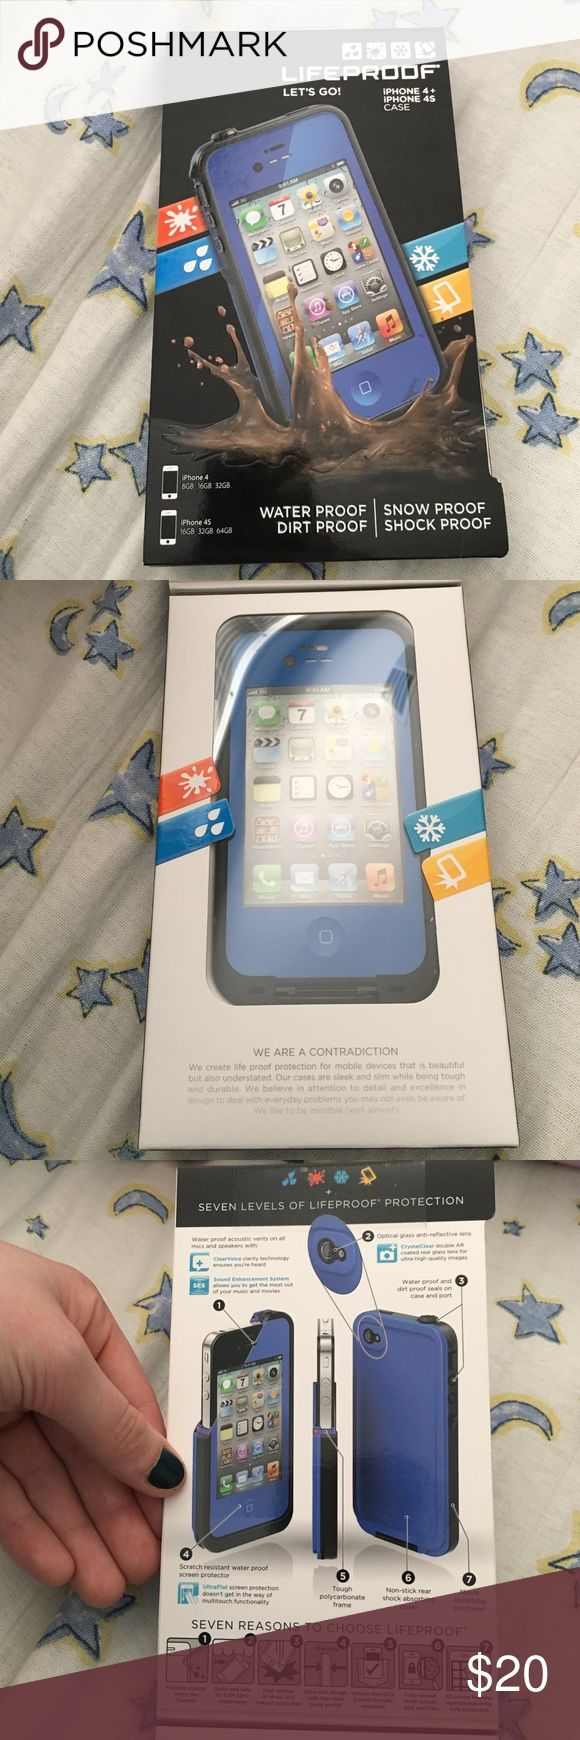 NWT iPhone 4/4s Blue Lifeproof Case iPhone 4/4s Blue Lifeproof Case - Negotiable Price Accessories Phone Cases